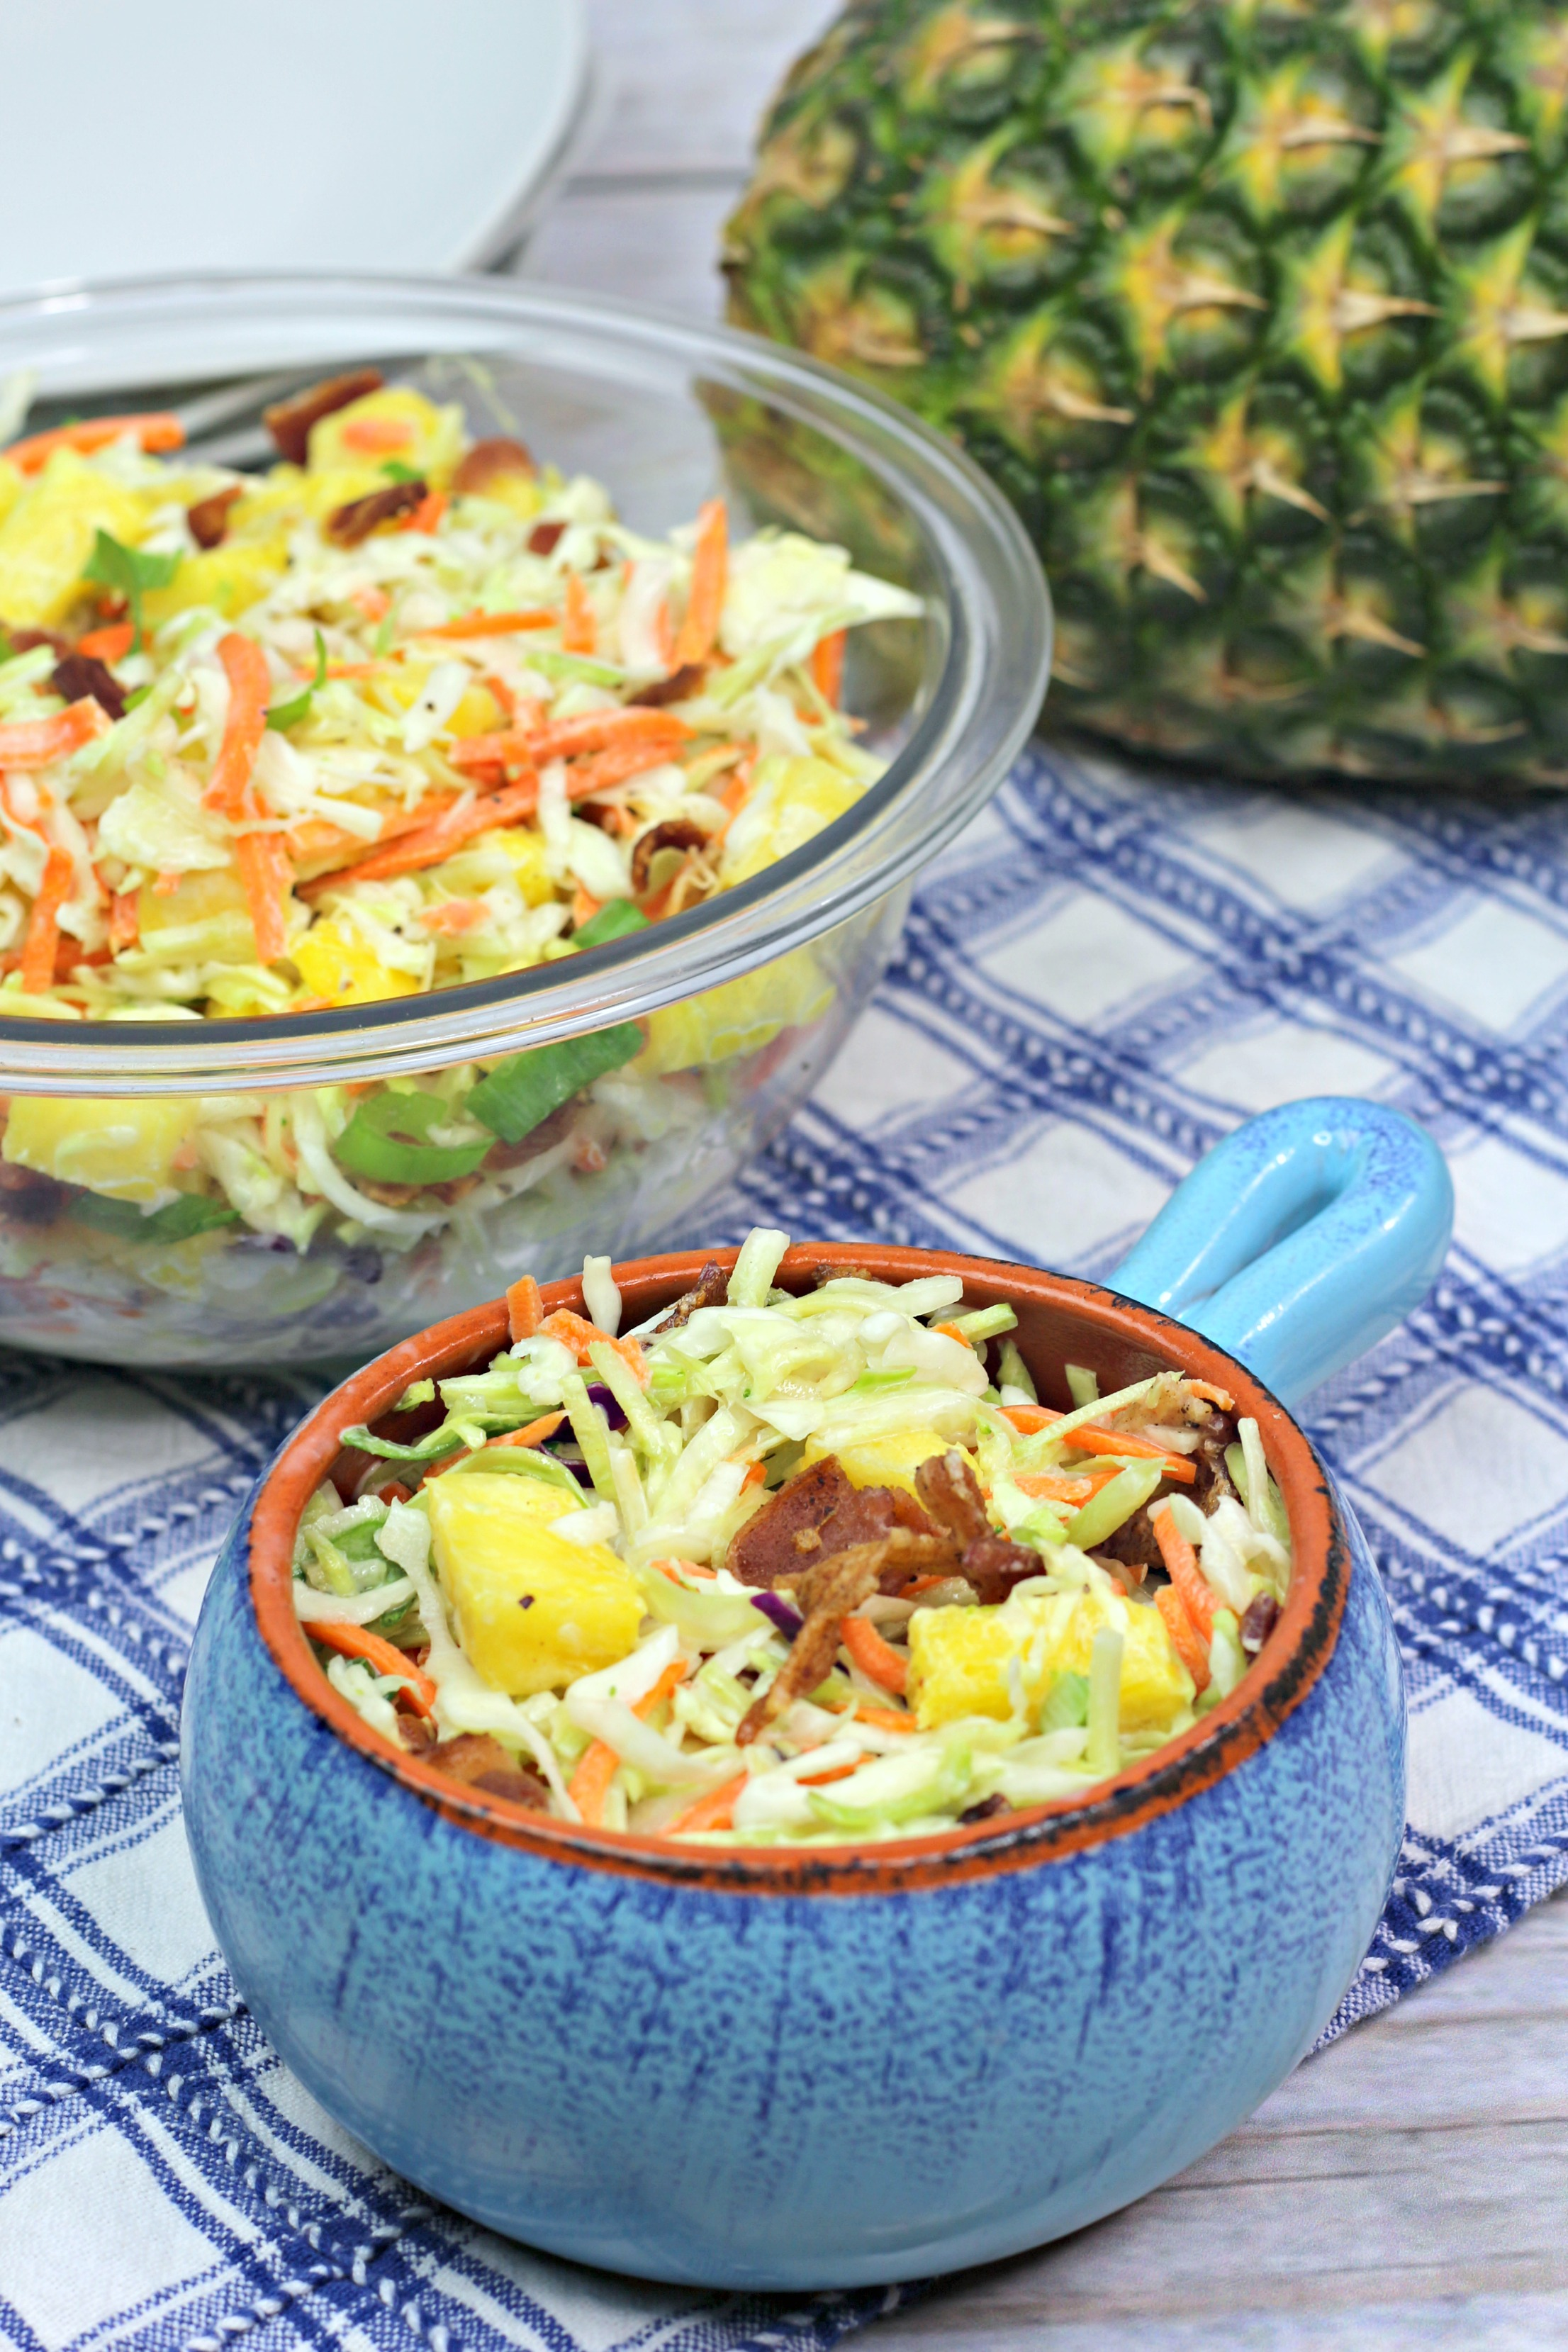 Take Your Coleslaw To The Next Level: Luau Coleslaw Recipe